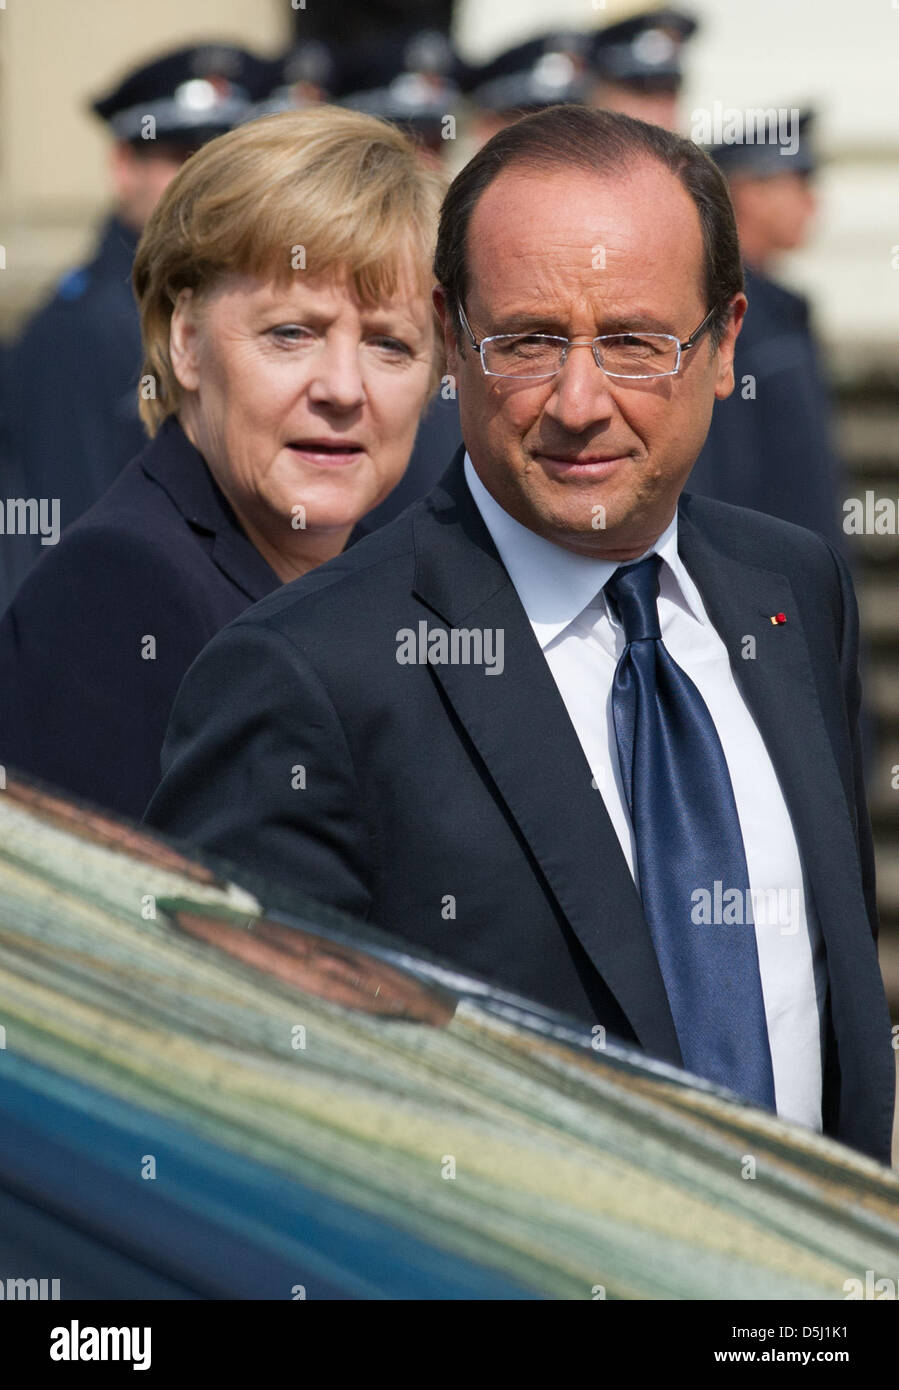 German Chancellor Angela Merkel and former French president Nicholas Sarkozy recommend